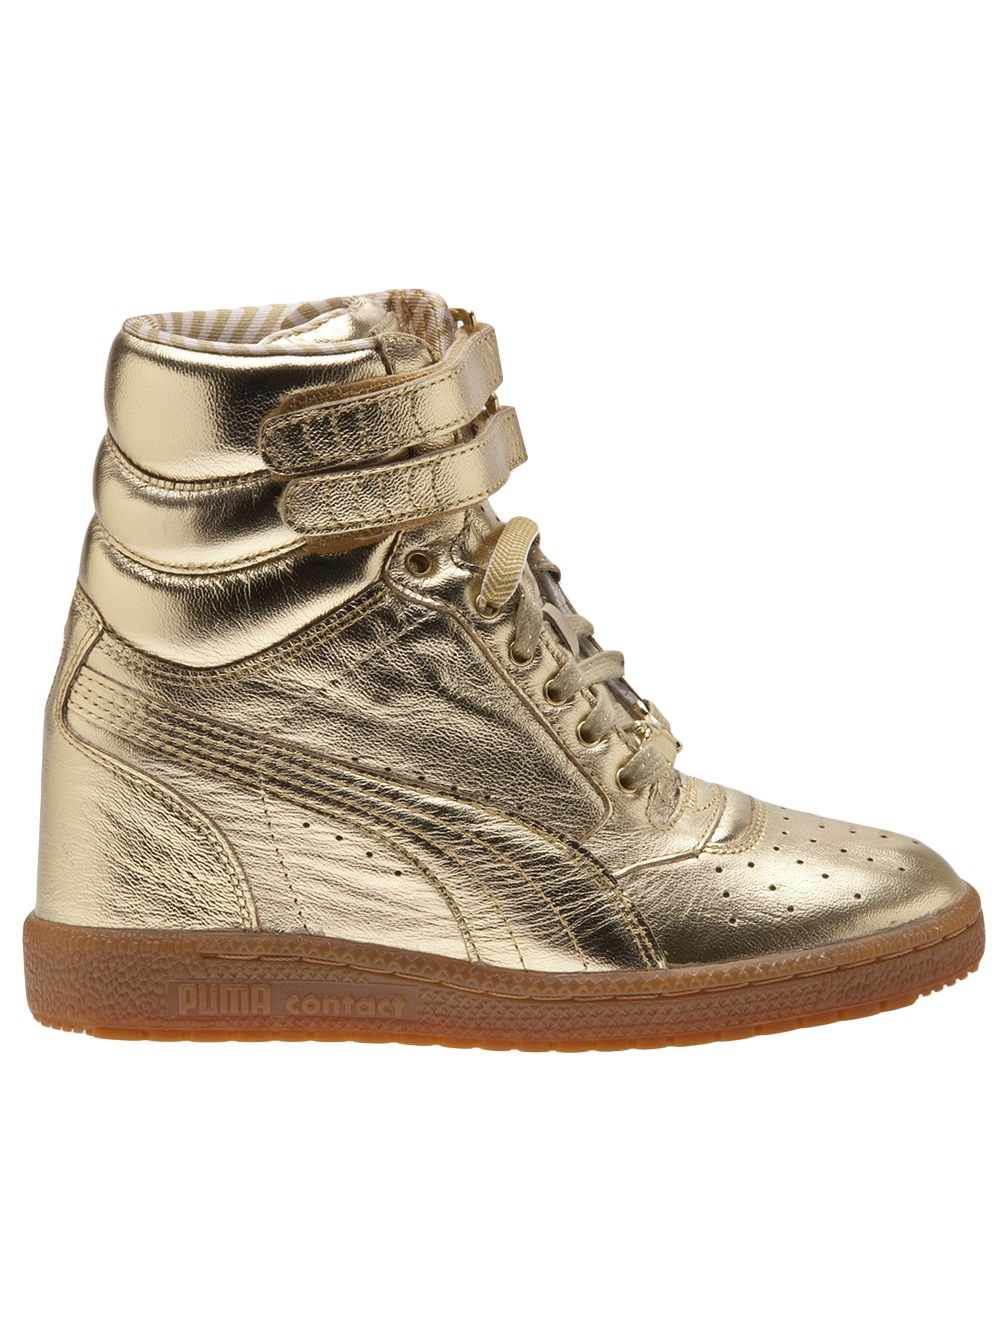 Nike Juvenate Puma Sky Wedge Sneaker In Metallic - Lyst